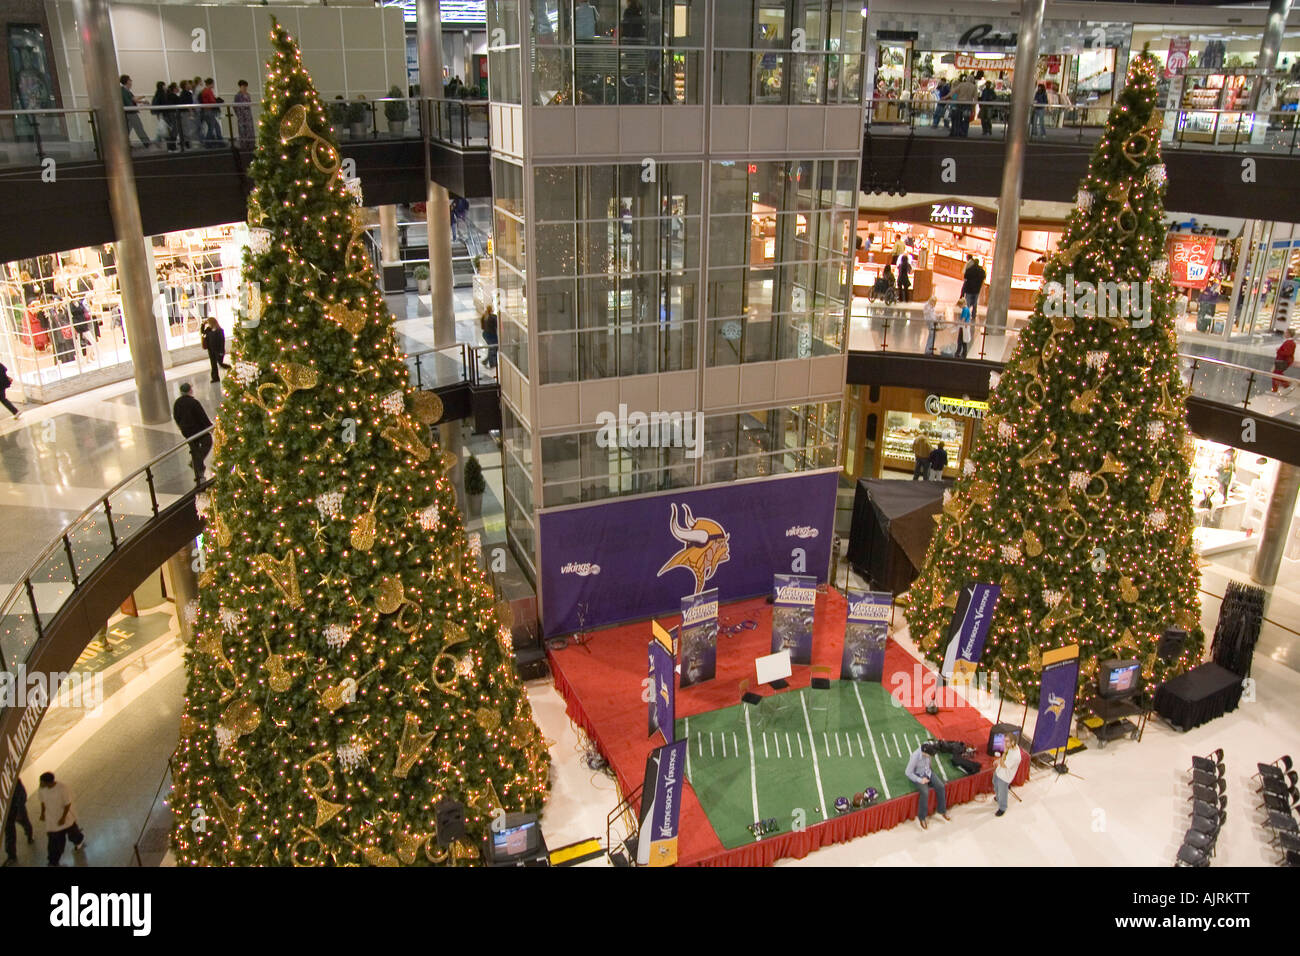 minnesota usa minneapolis mall of america pre christmas shopping in the the largest indoor mall in - Mall Of America Christmas Decorations